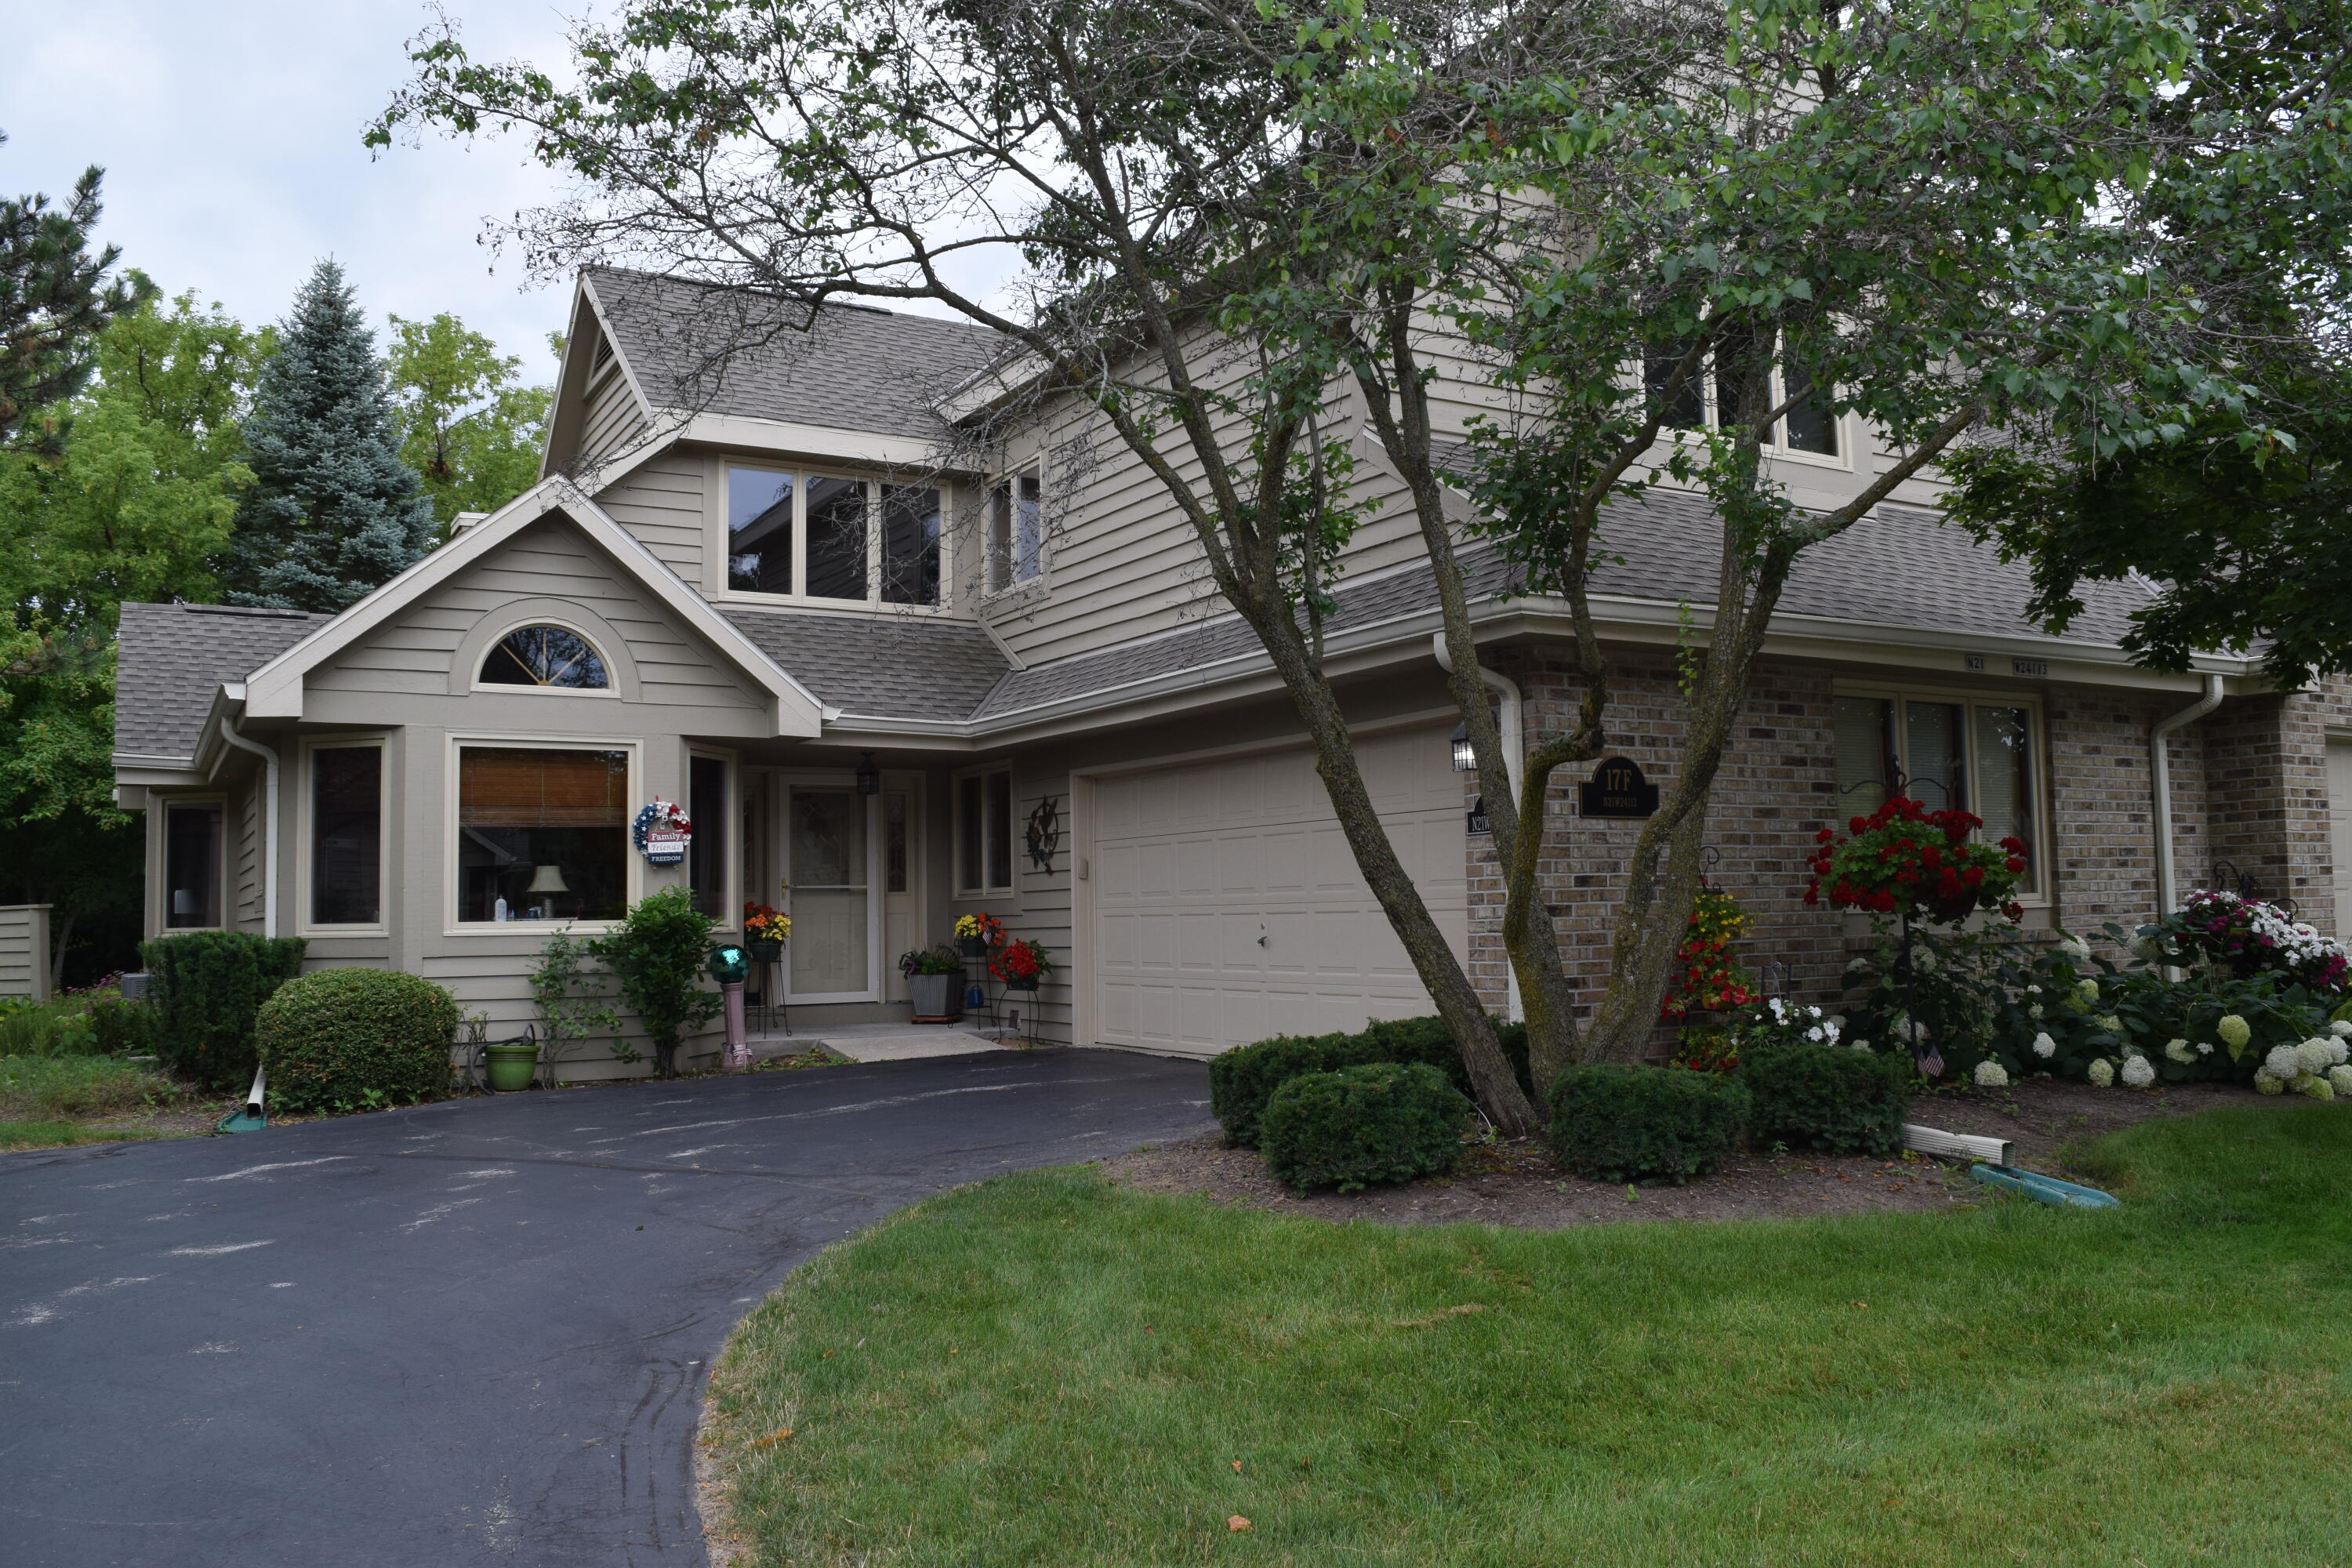 N21W24113 Dorchester Dr, Pewaukee, Wisconsin 53072, 2 Bedrooms Bedrooms, ,2 BathroomsBathrooms,Condominiums,For Sale,Dorchester Dr,1,1754382